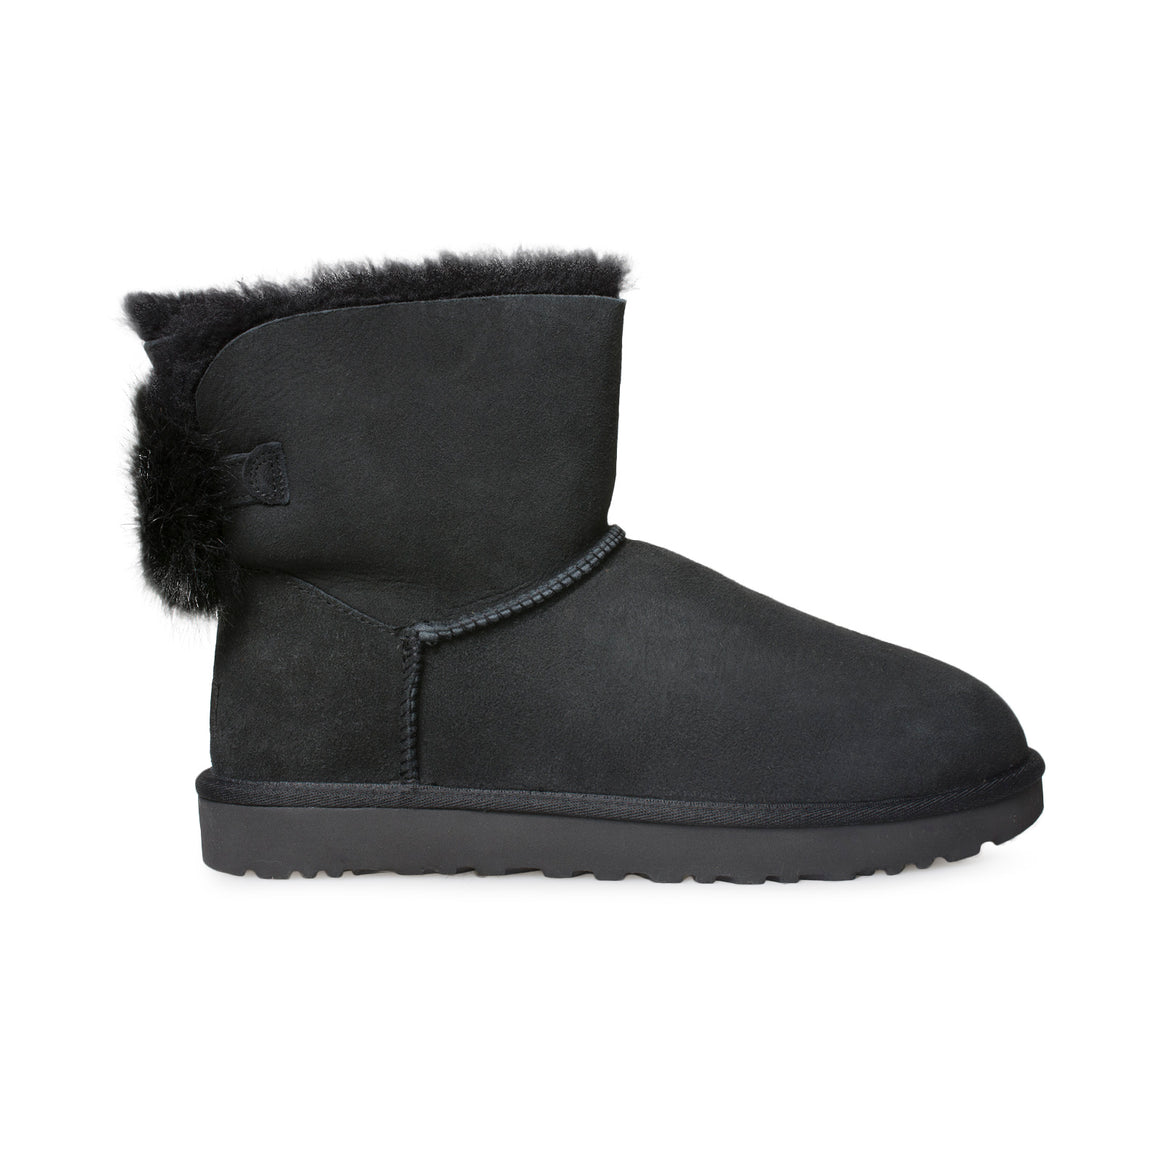 UGG Mini Puff Crystal Bow Black Boots - Women's